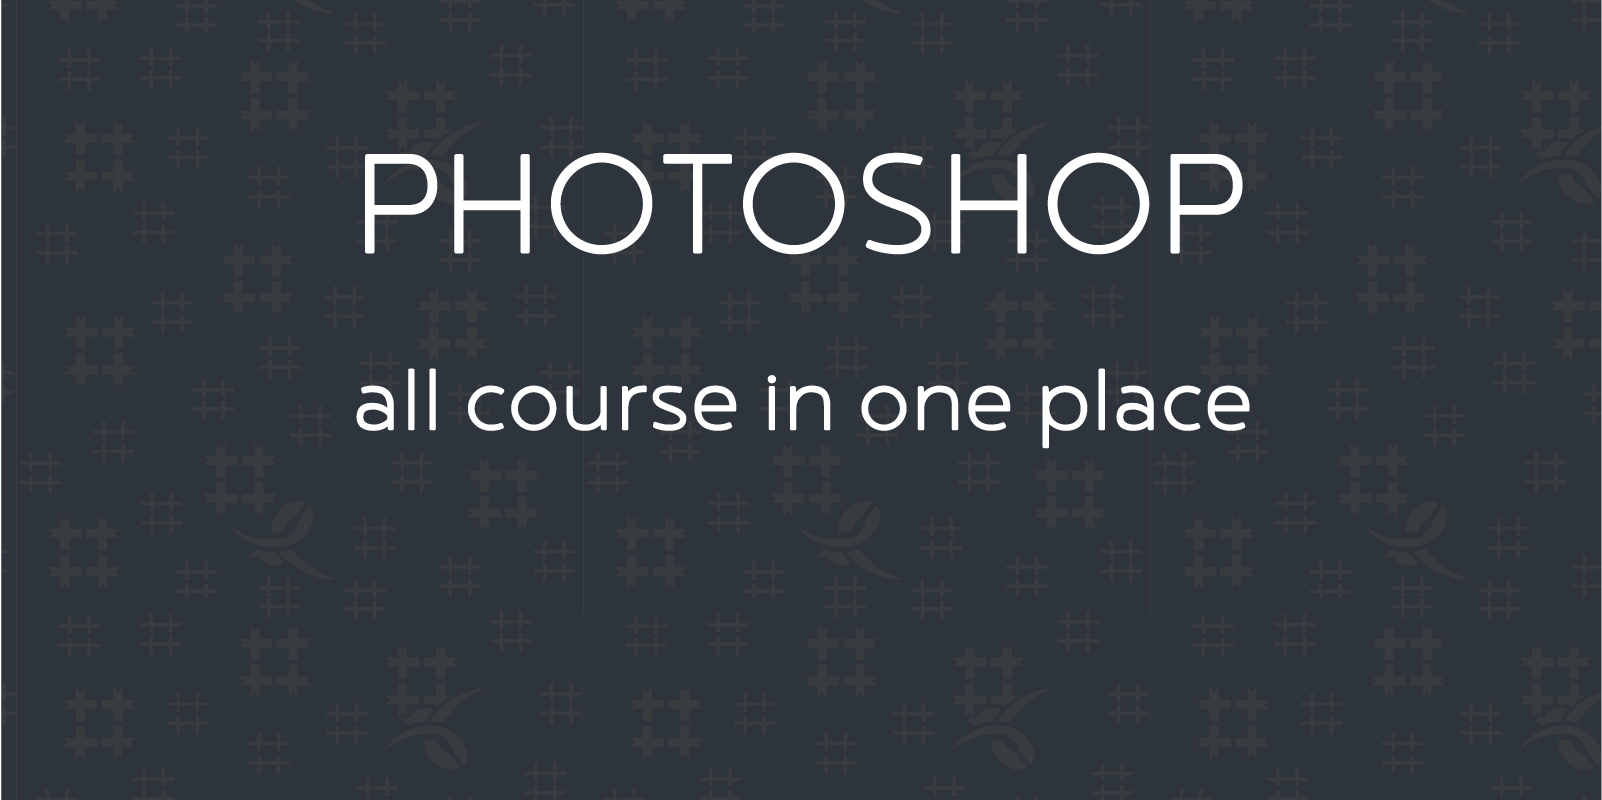 photoshop-digital-design-courses for fashion and textile